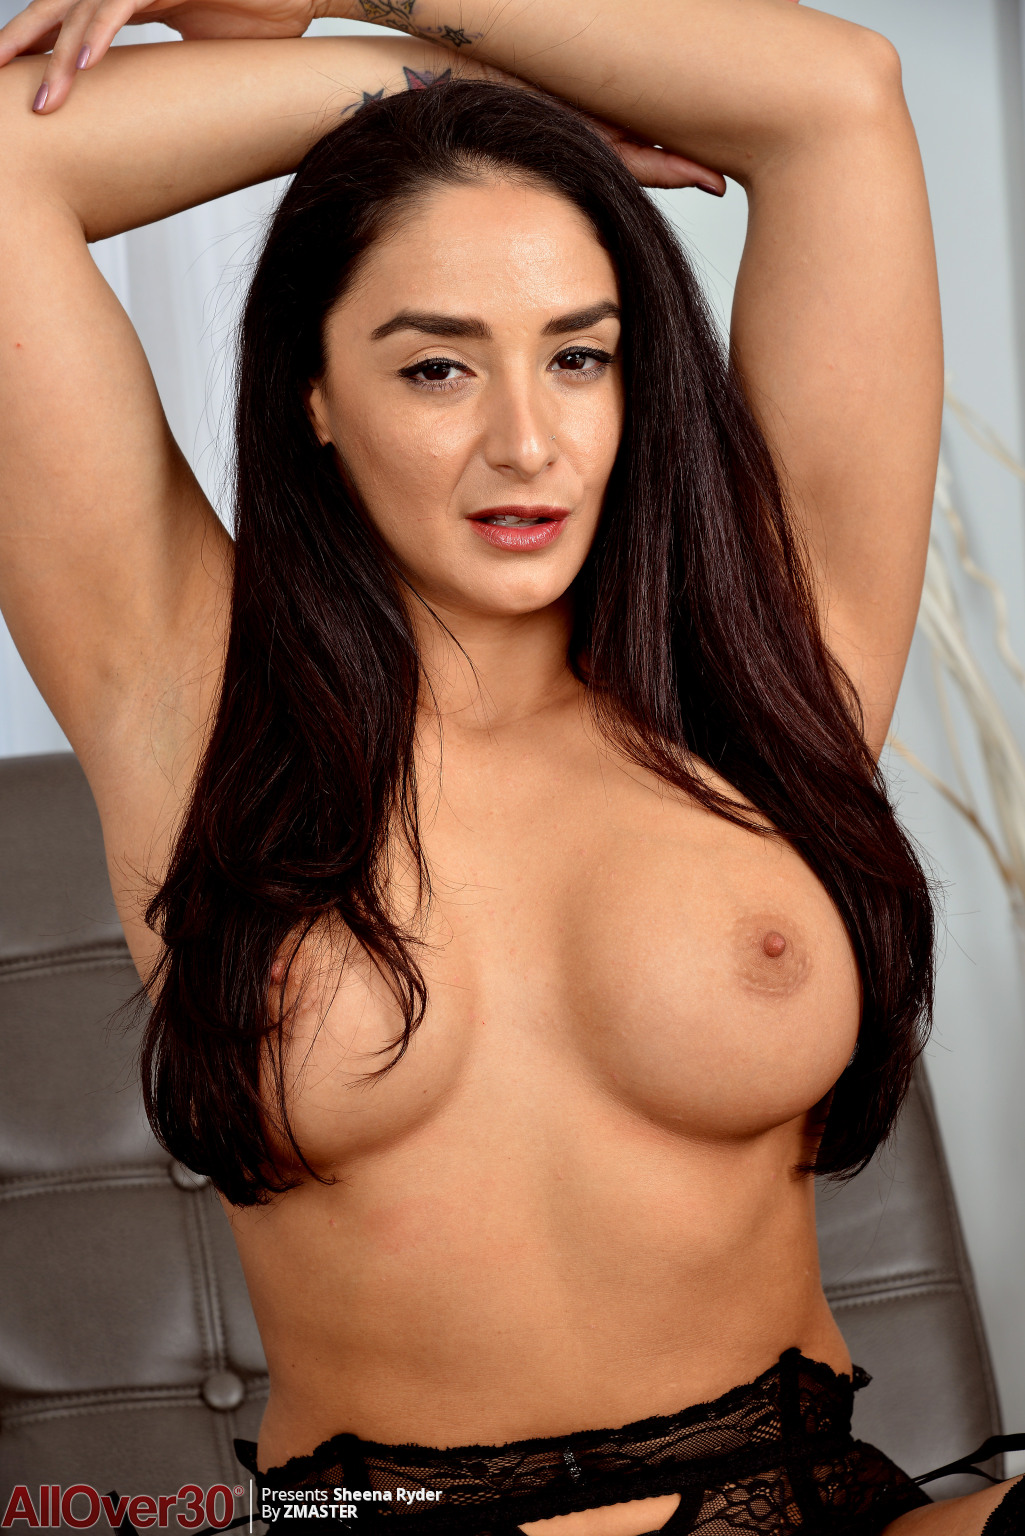 big-tits-beauty-sheena-ryder-10